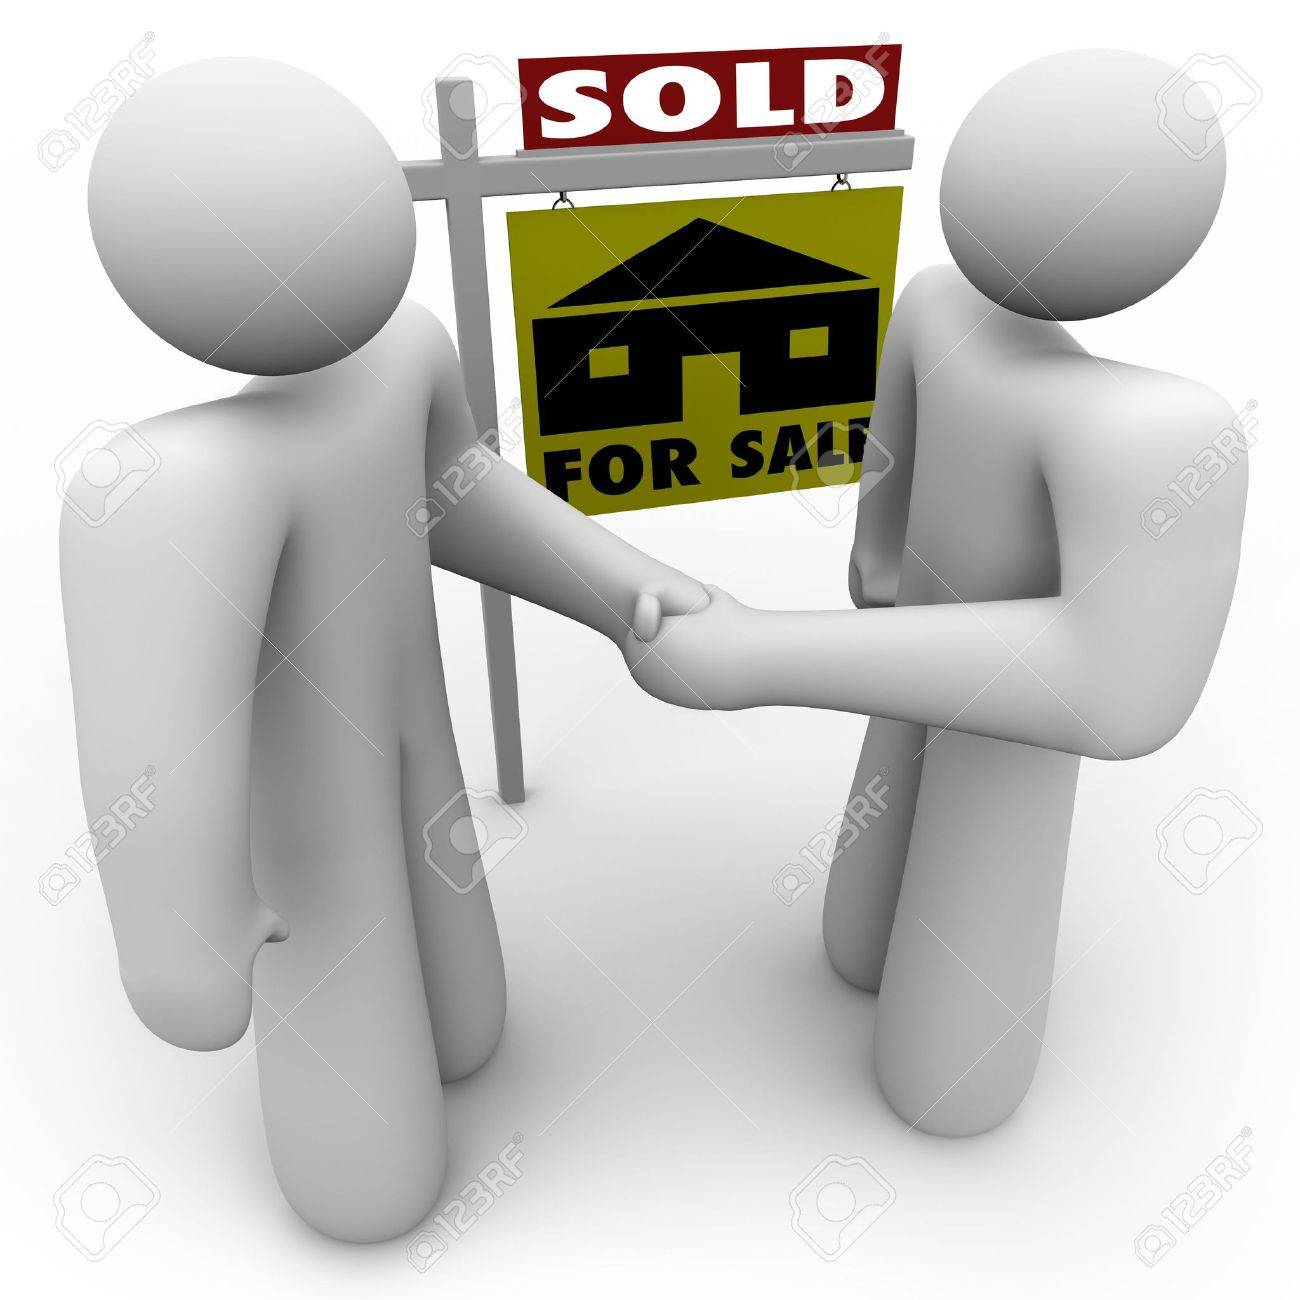 A home buyer and seller shake hands in front of a for sale sign that is marked Sold. Stock Photo - 5994475